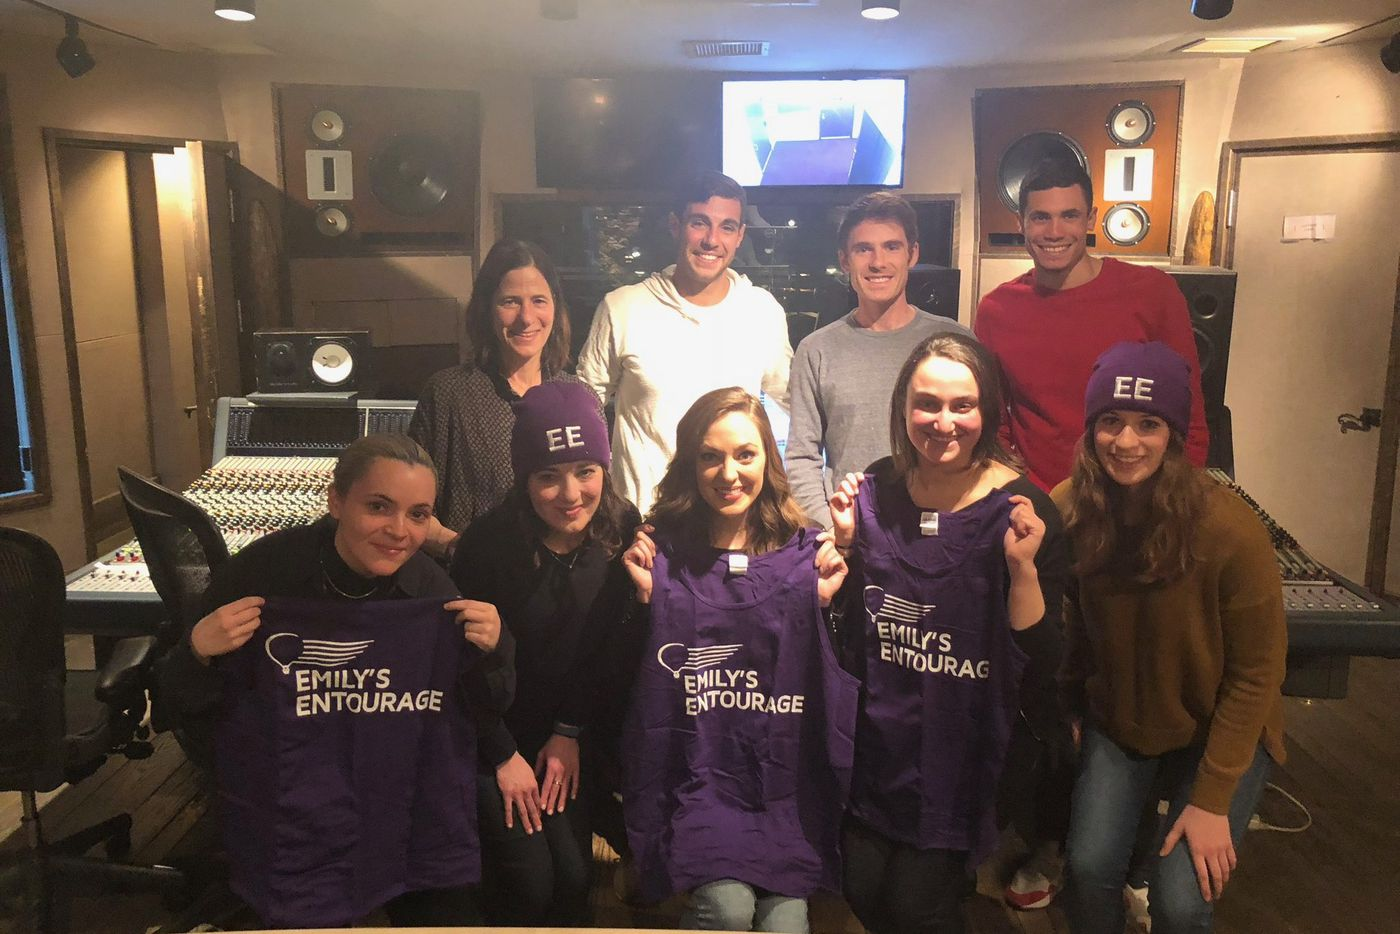 Broadway stars join Lower Merion native to fight cystic fibrosis